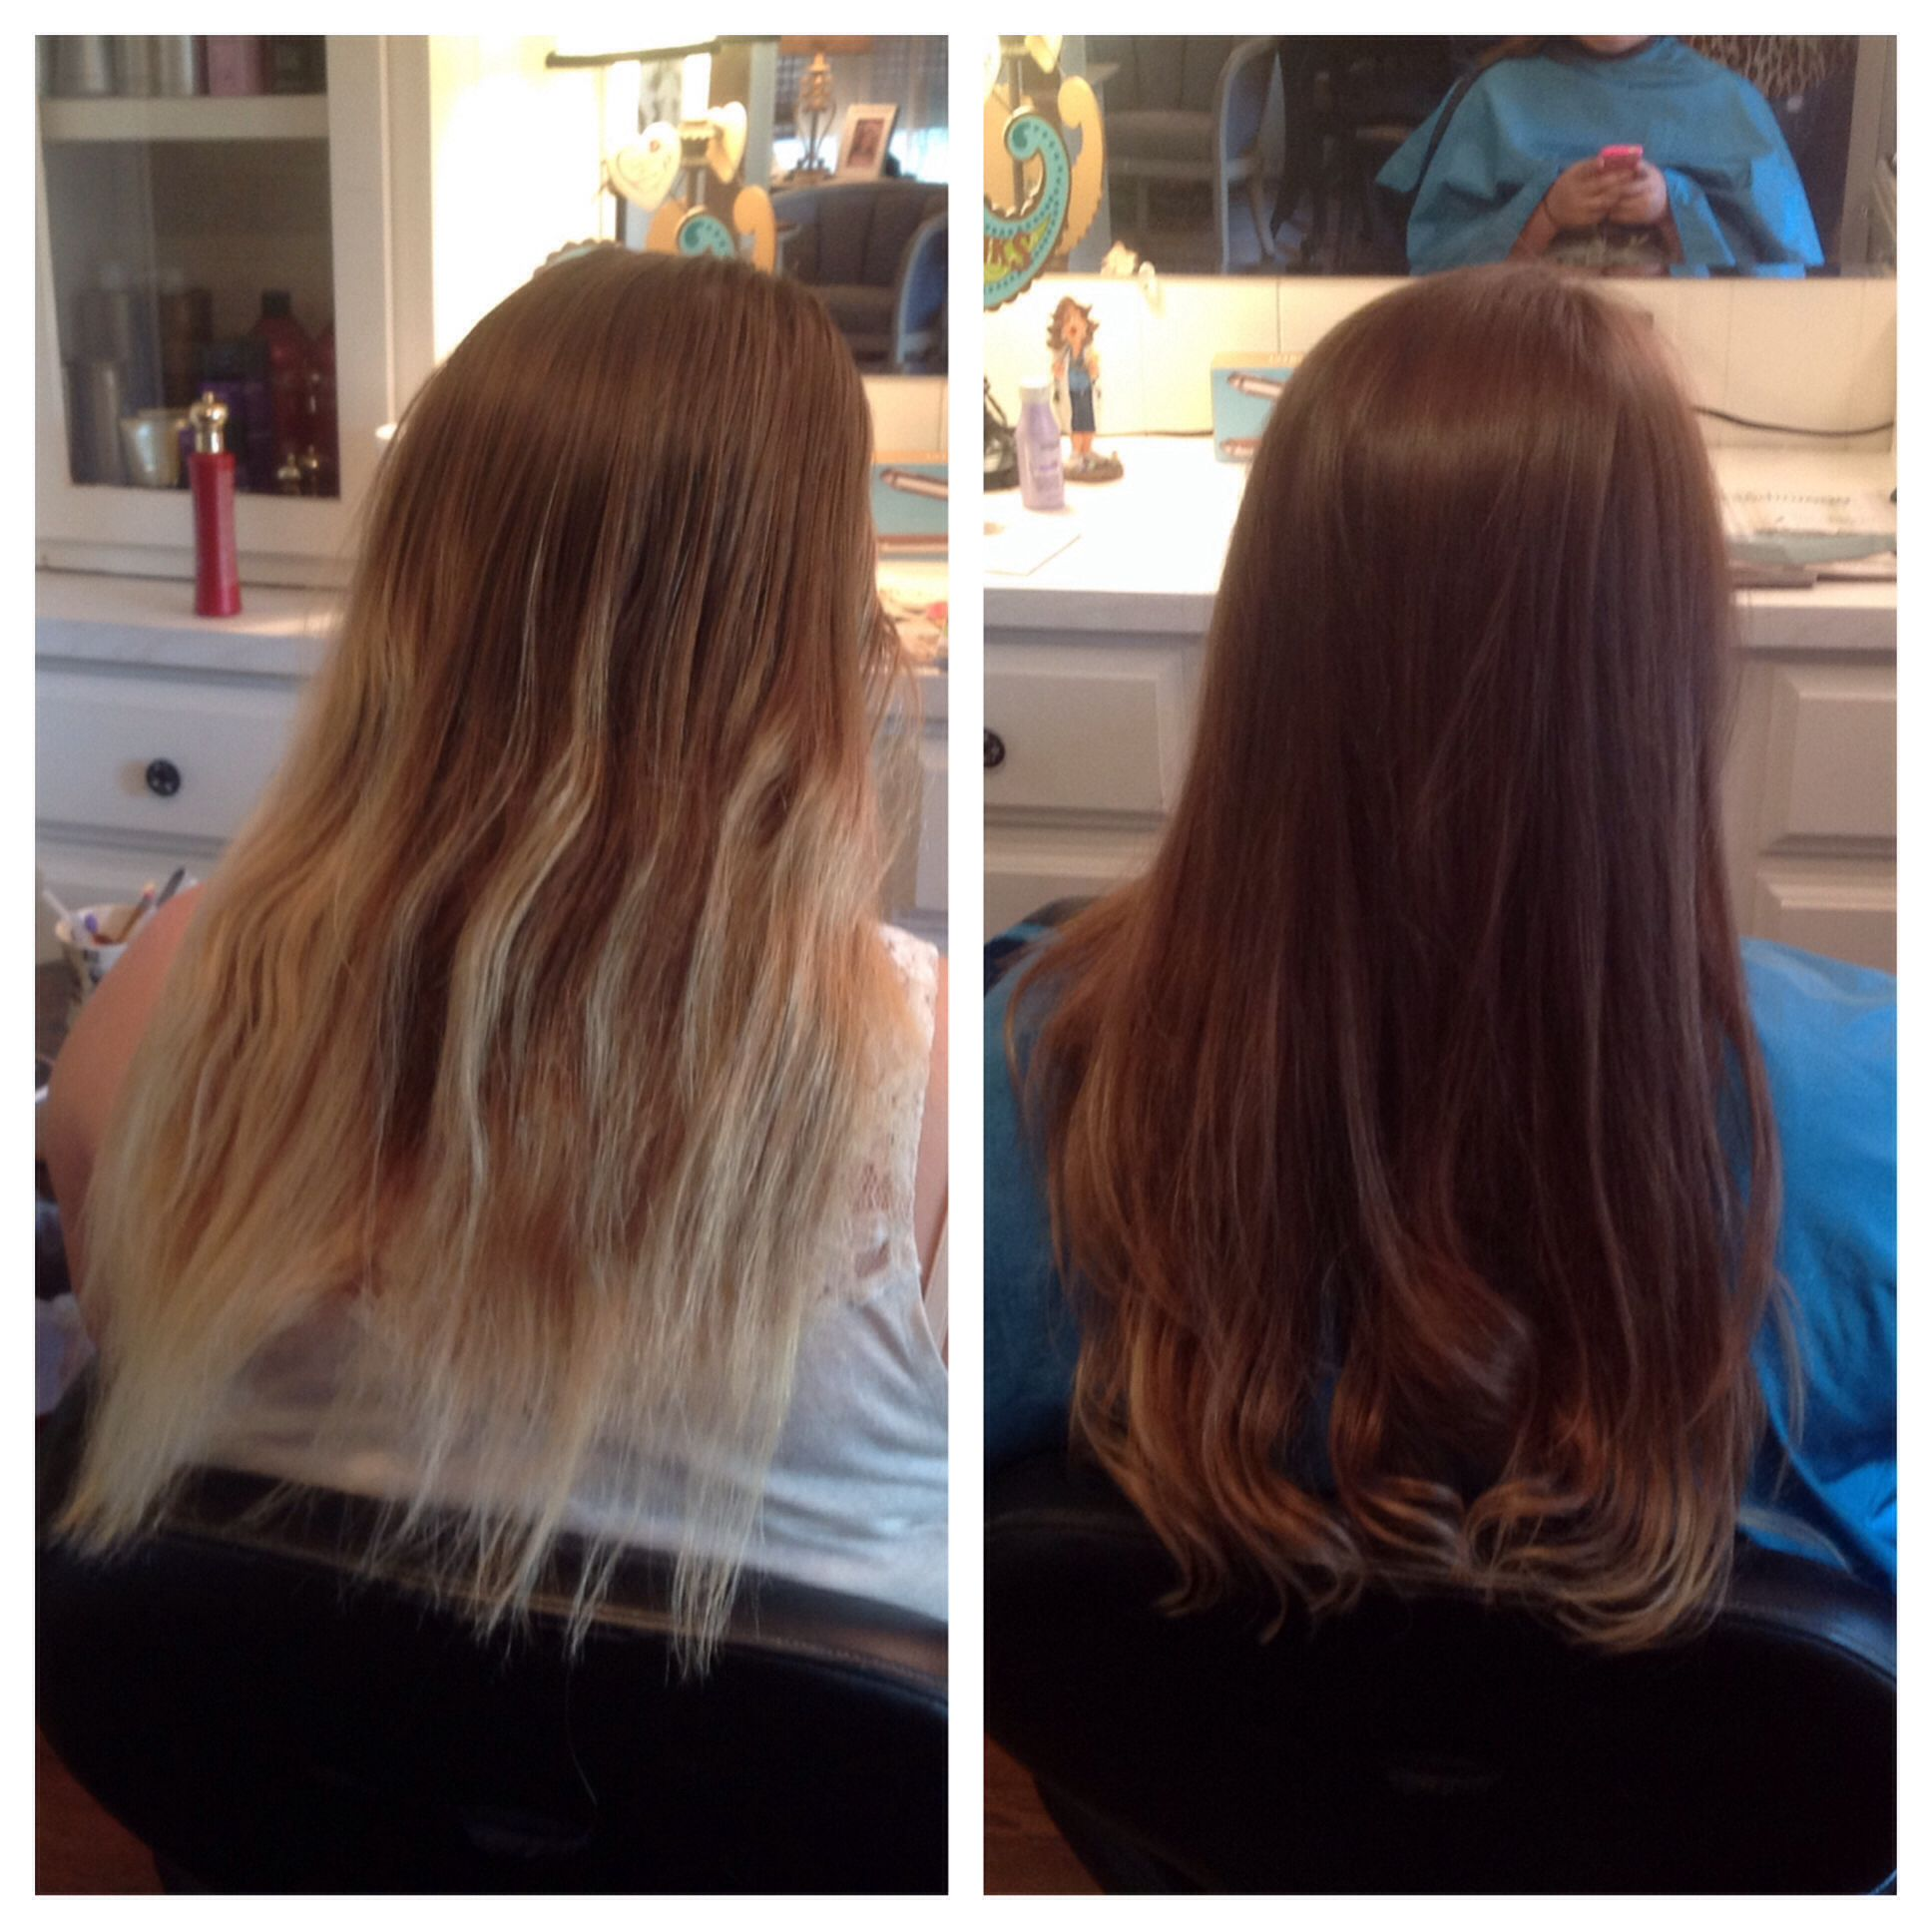 Coloring Hair Makes It Thicker